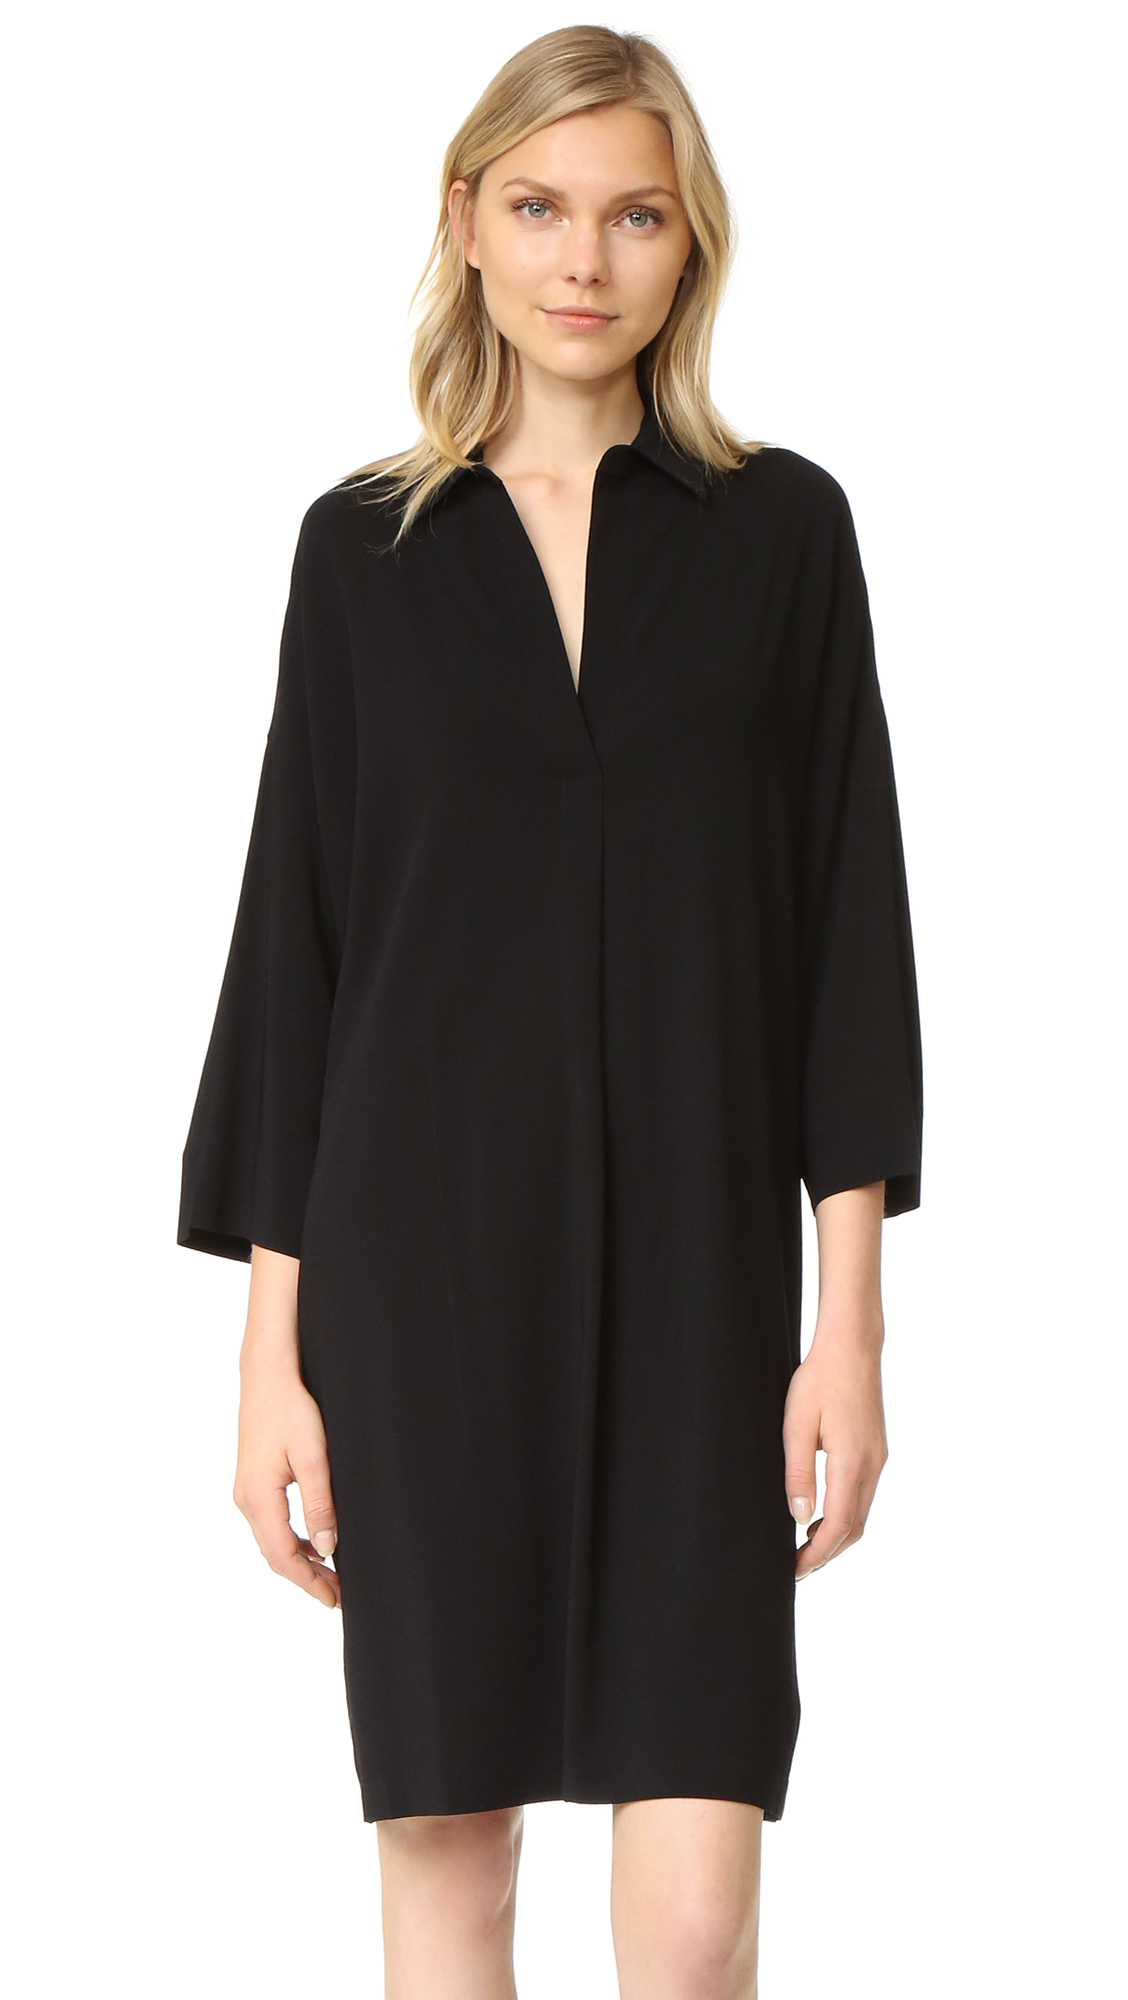 Vince Easy Pullover Dress - Black at Shopbop